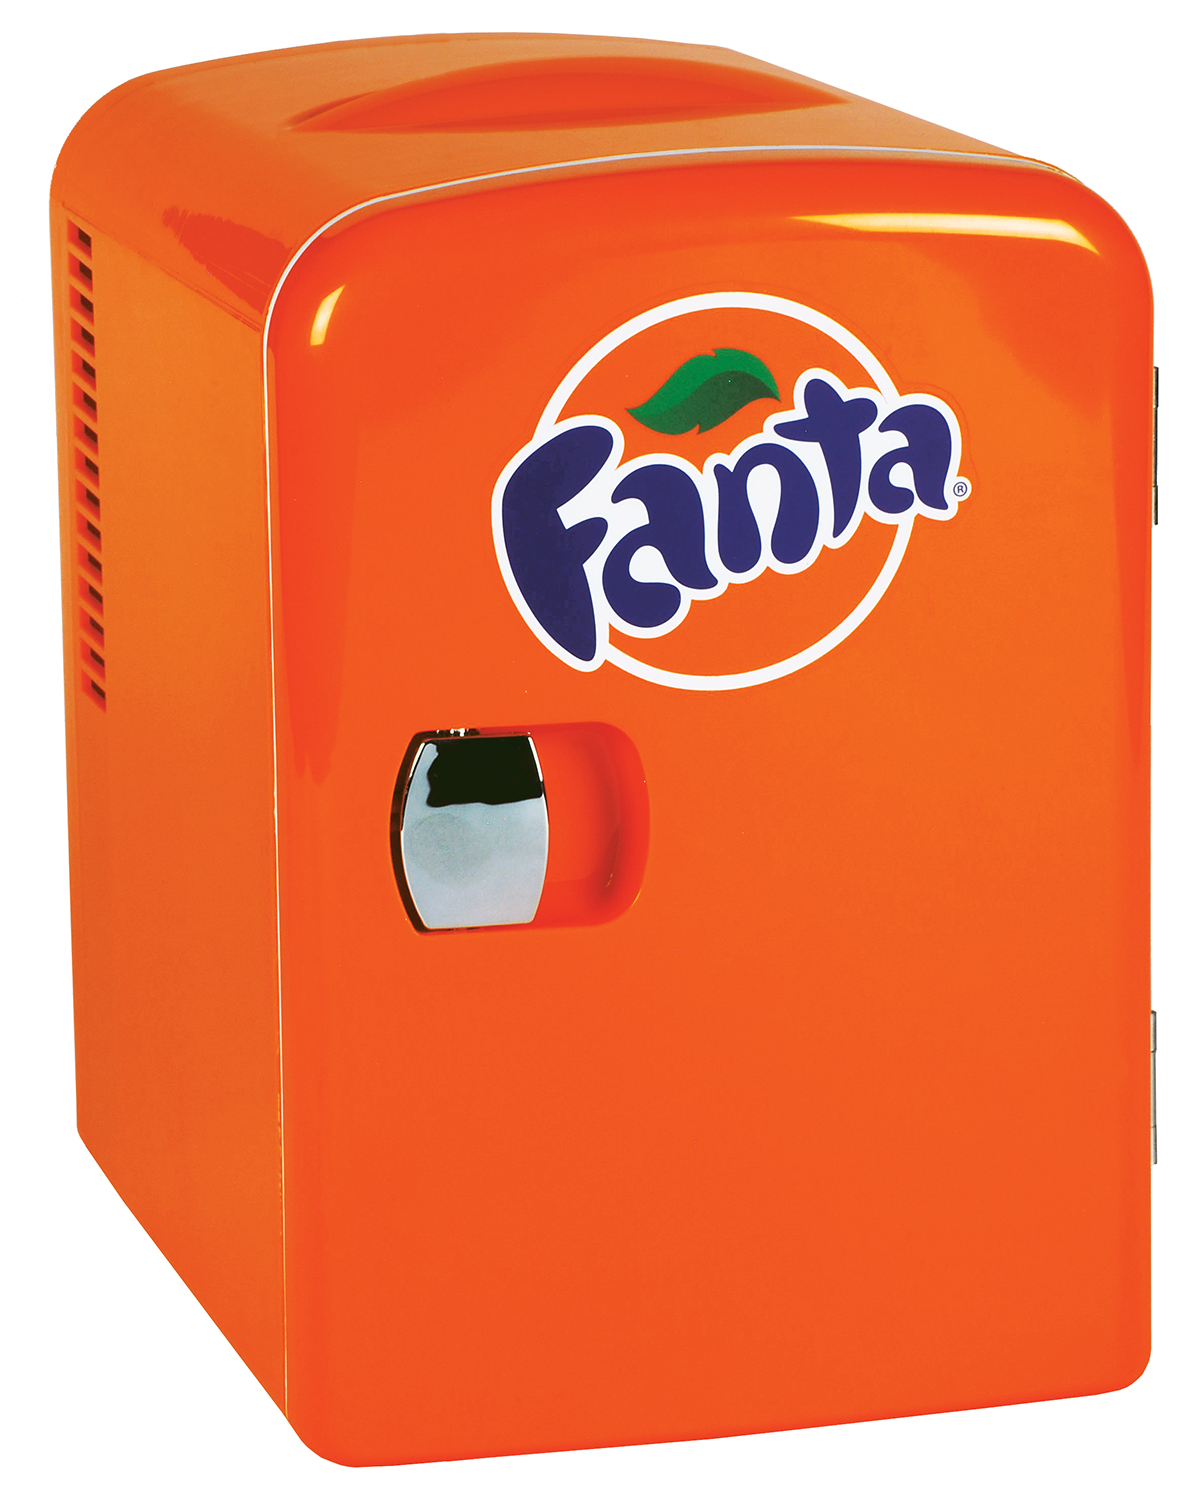 Fanta 4 Liter/6 Can Portable Fridge/Mini Cooler for Food, Beverages, Skincare - Use at Home, Office, Dorm, Car, Boat - AC & DC Plugs Included